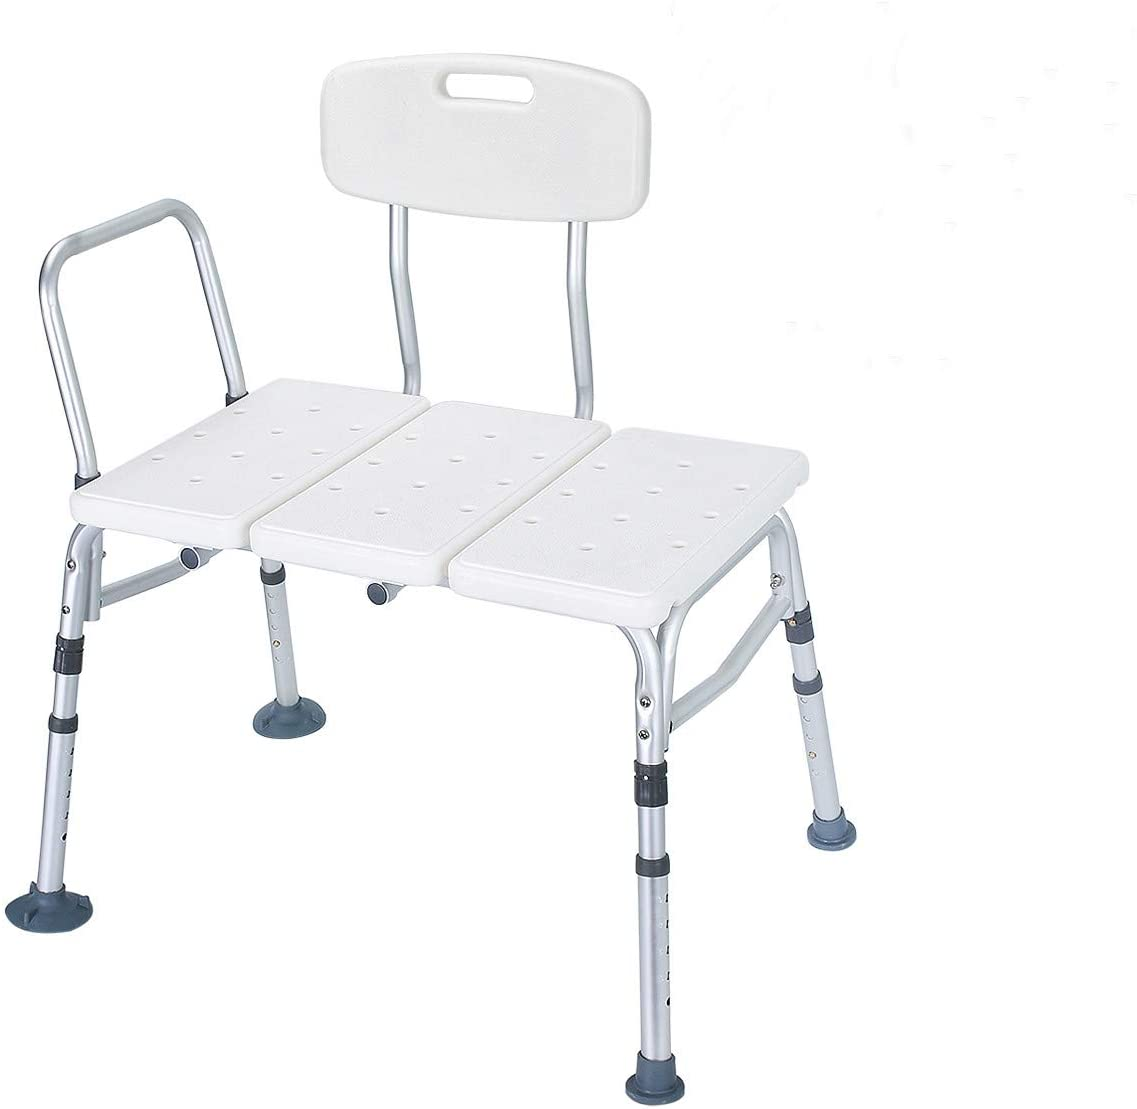 Health Line Massage Products Tool-Free 400 lbs Transfer Bench, Tub Adjustable Shower Bath Chair, w/Reversible Back & Non-Slip Feet, Great for Elderly, Disabled, Seniors & Bariatric - w/Bonus Scruber